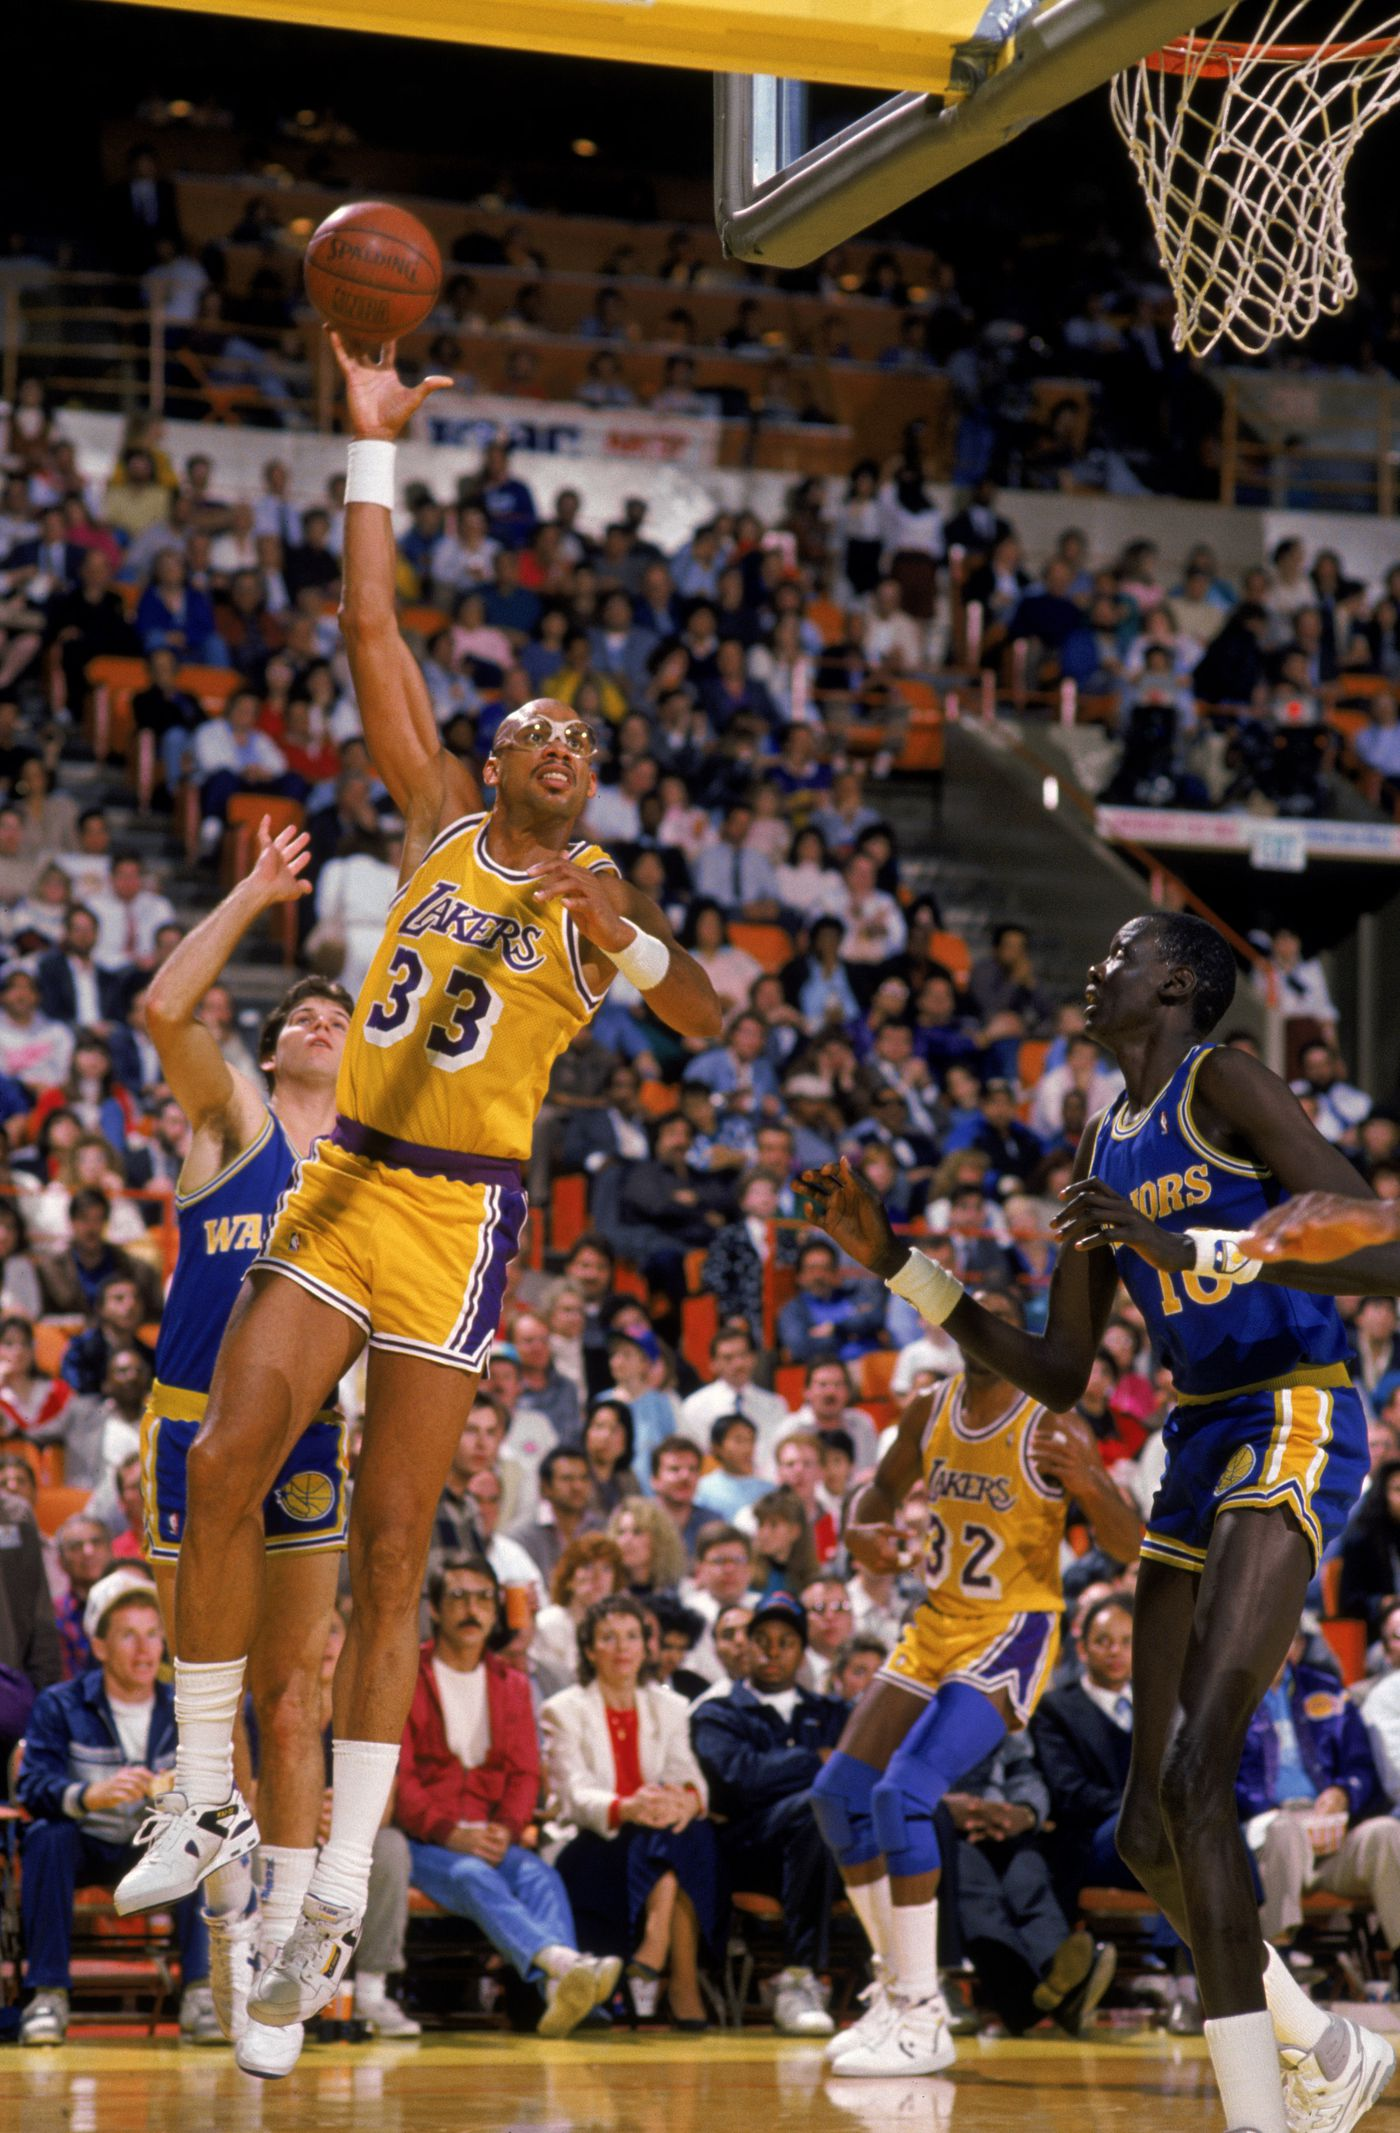 Lakers Profile: Kareem Abdul-Jabbar, the most under-appreciated GOAT - Silver Screen and Roll